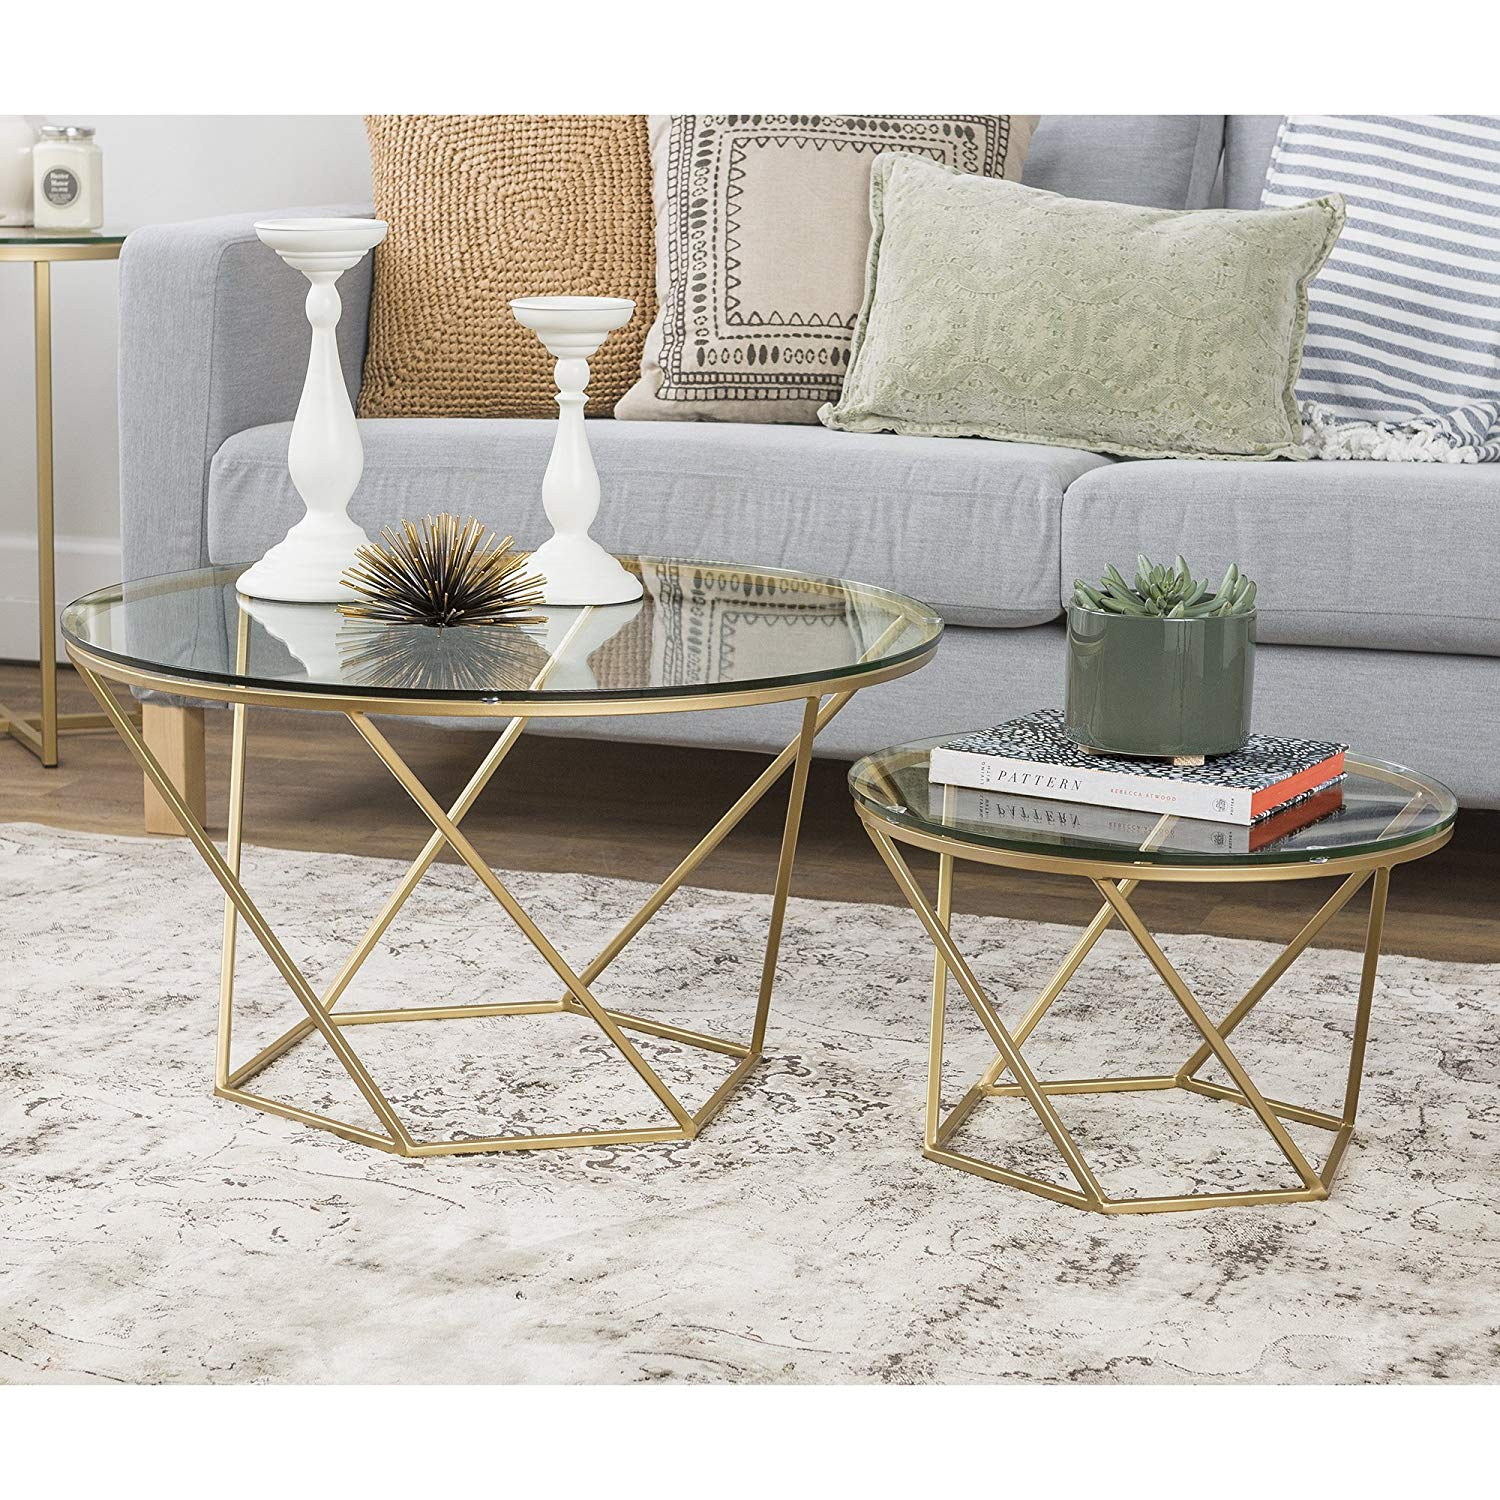 furniture geometric glass nesting coffee tables bxel black gold accent table kitchen dining novelty lamps wrought iron patio side white half moon console large square rustic